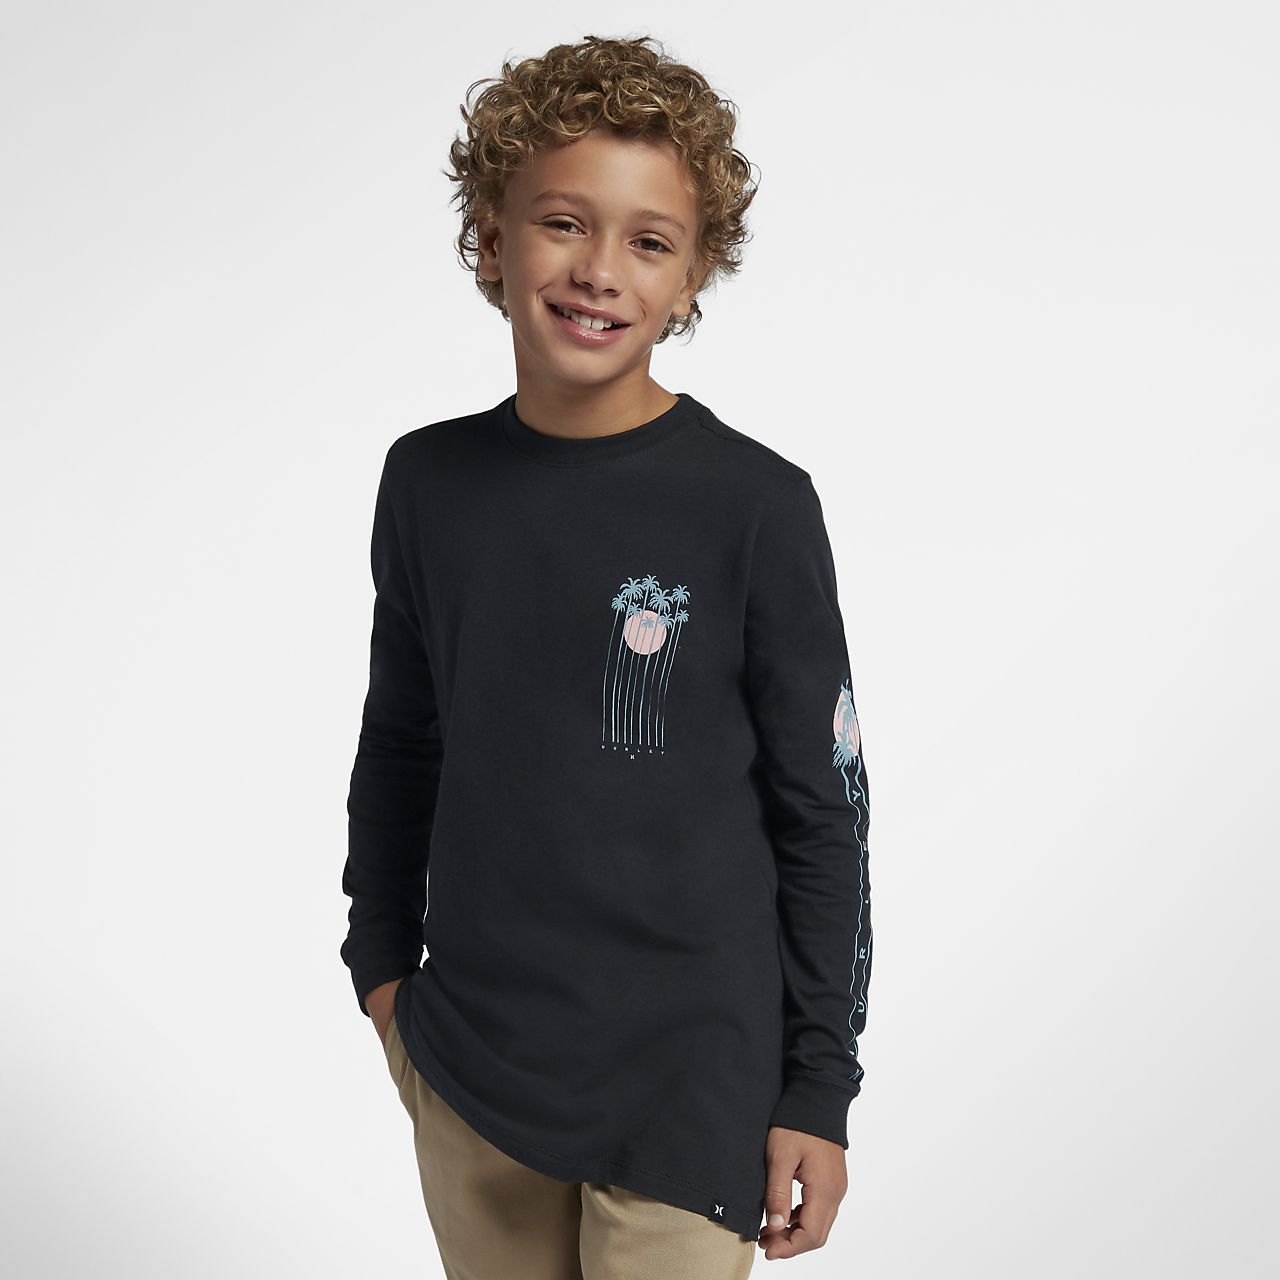 Hurley Premium Hidden Palms Boys' T-Shirt